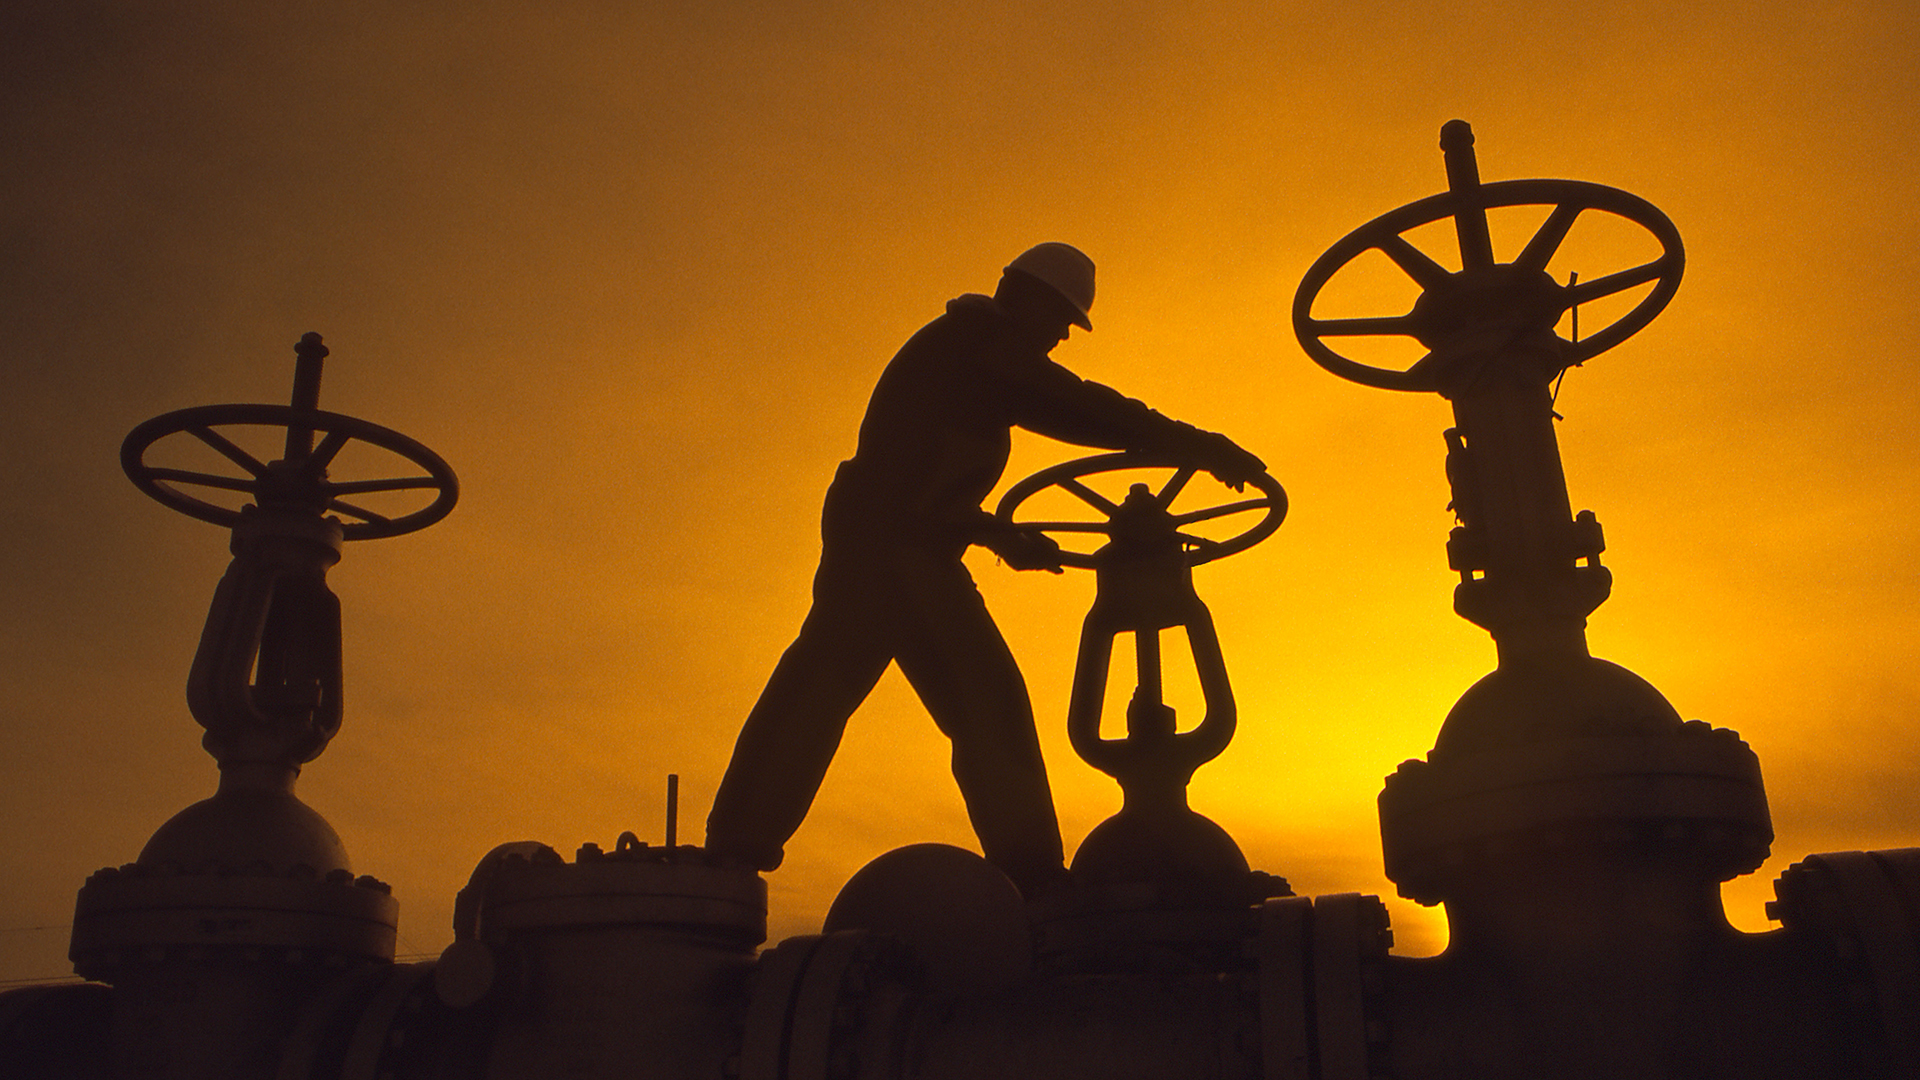 Oil and gas worker